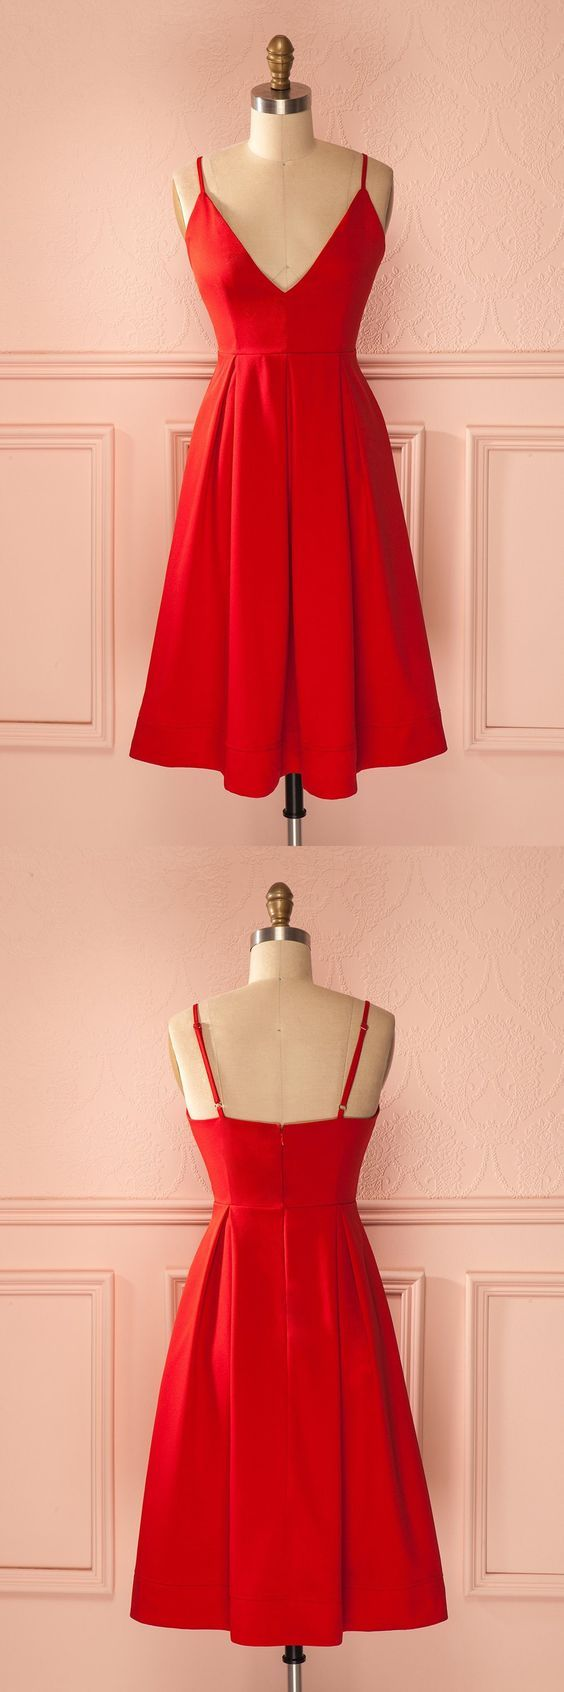 Red Homecoming Dress ,Homecoming DressES,Open Back Homecoming Dress,.Sexy